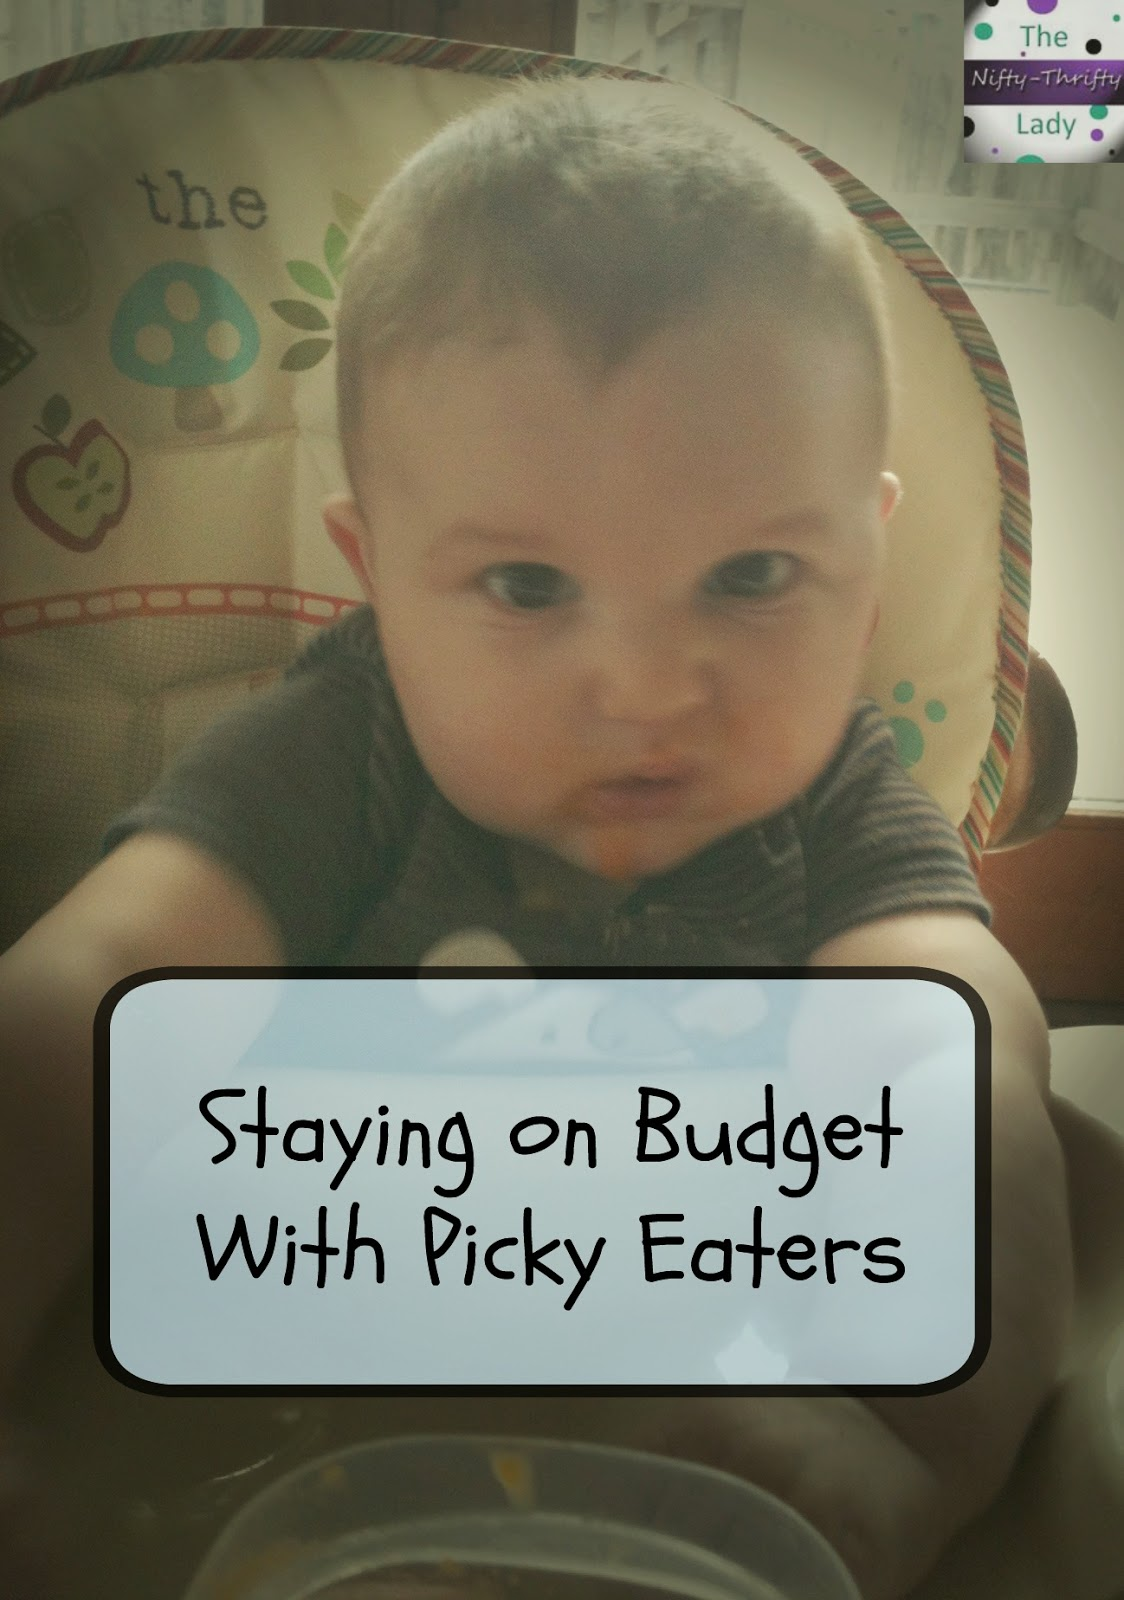 How to stay on budget with picky eater